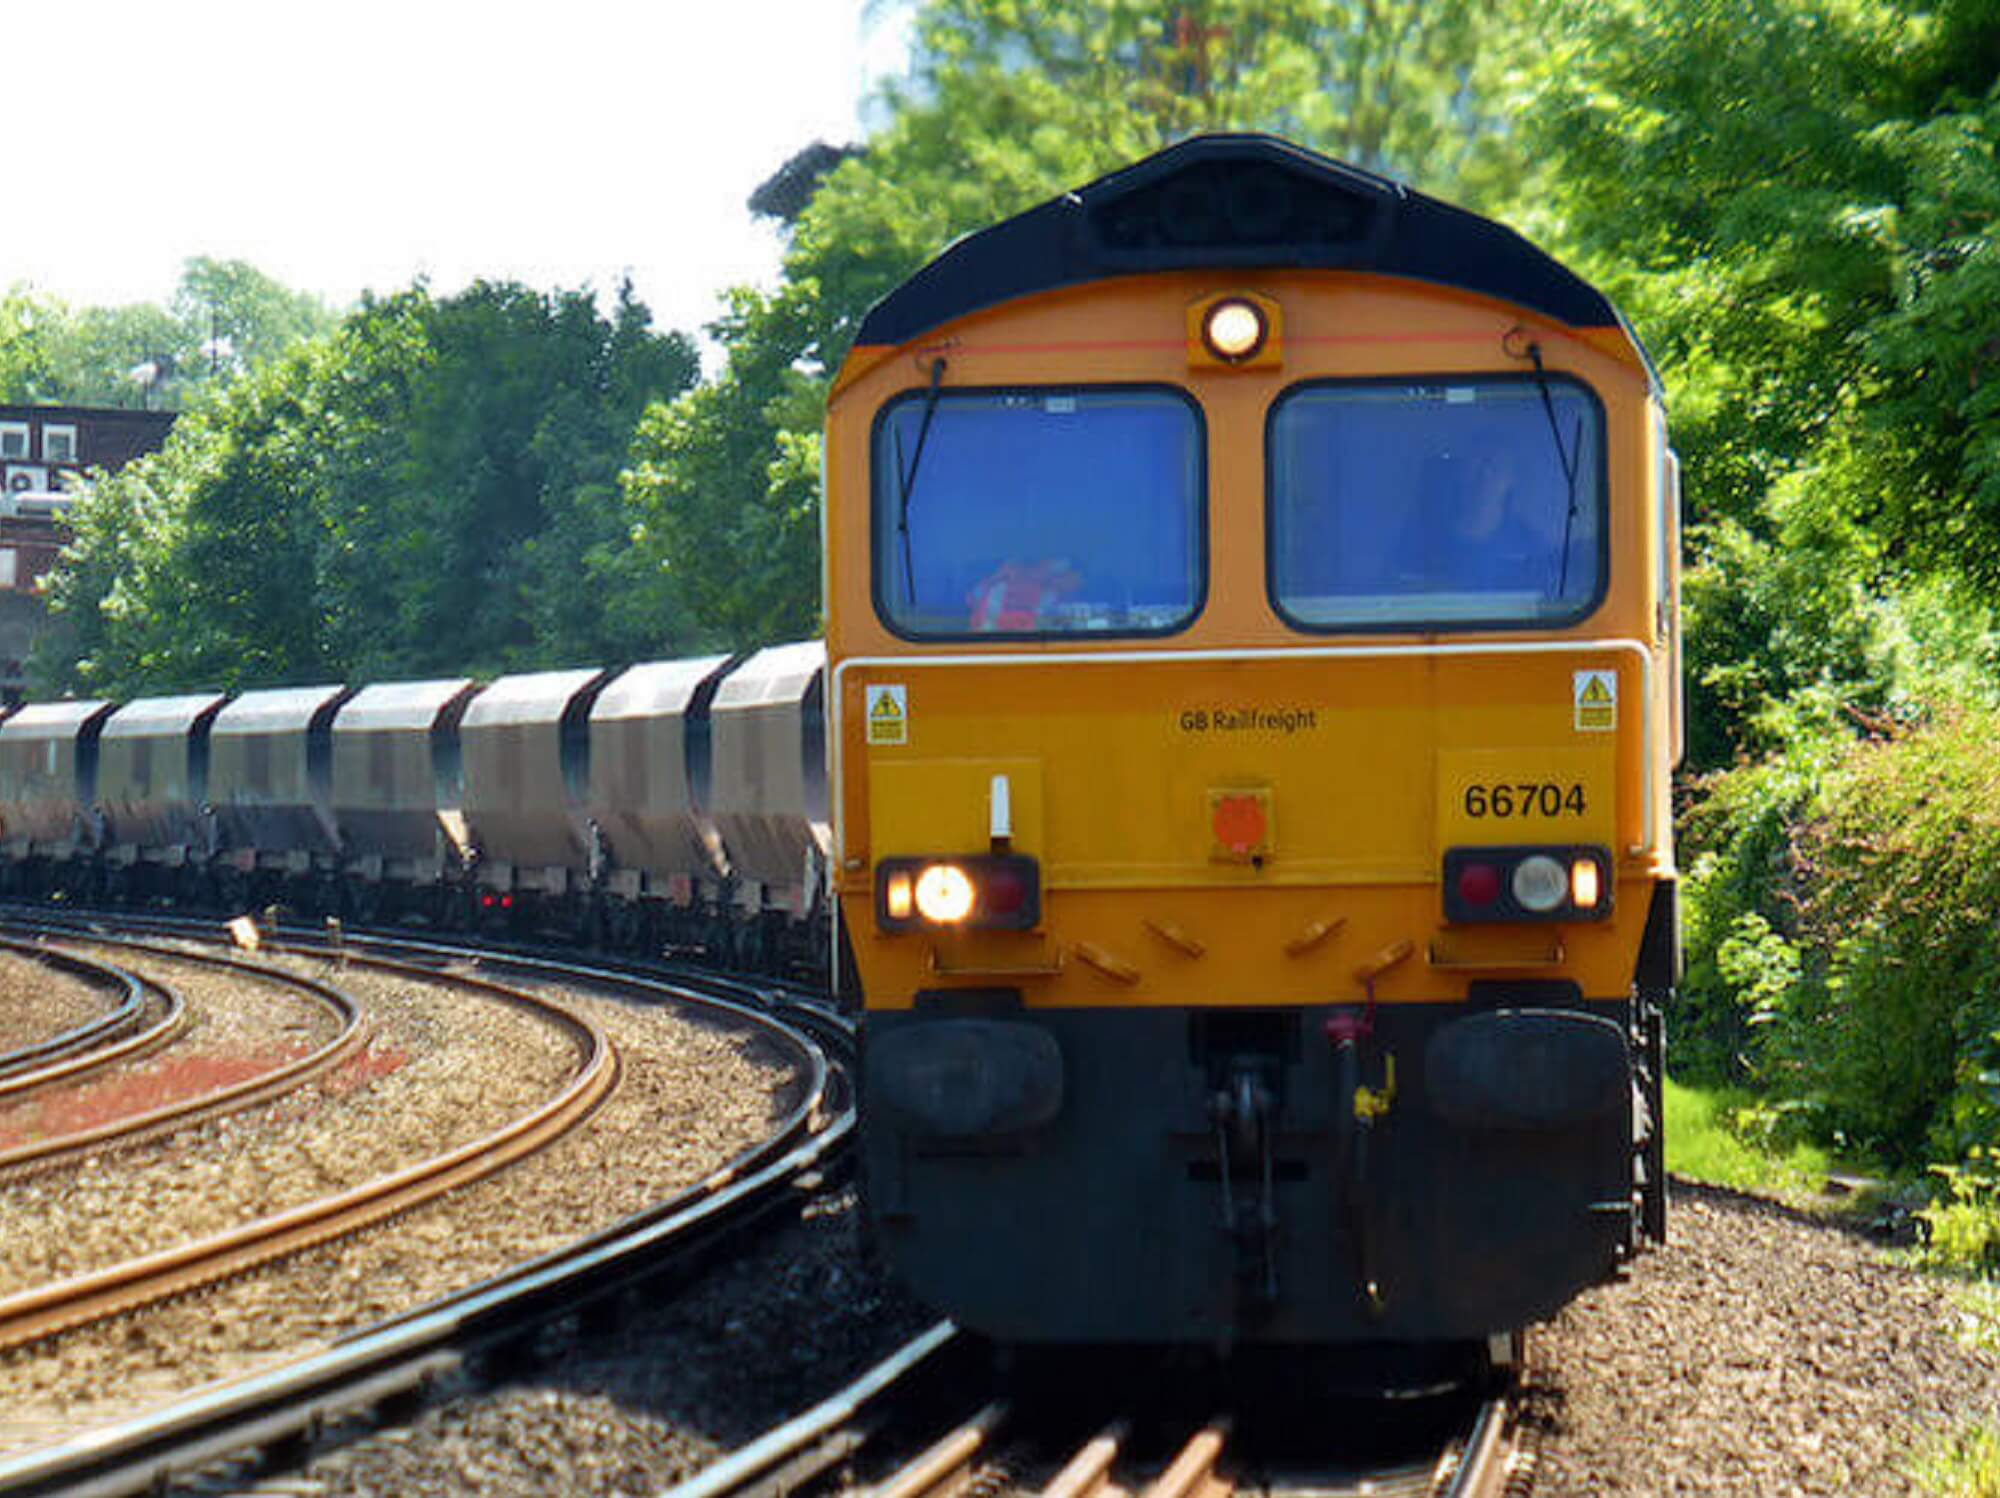 Freight train engine with wagons travelling on tracks in the UK